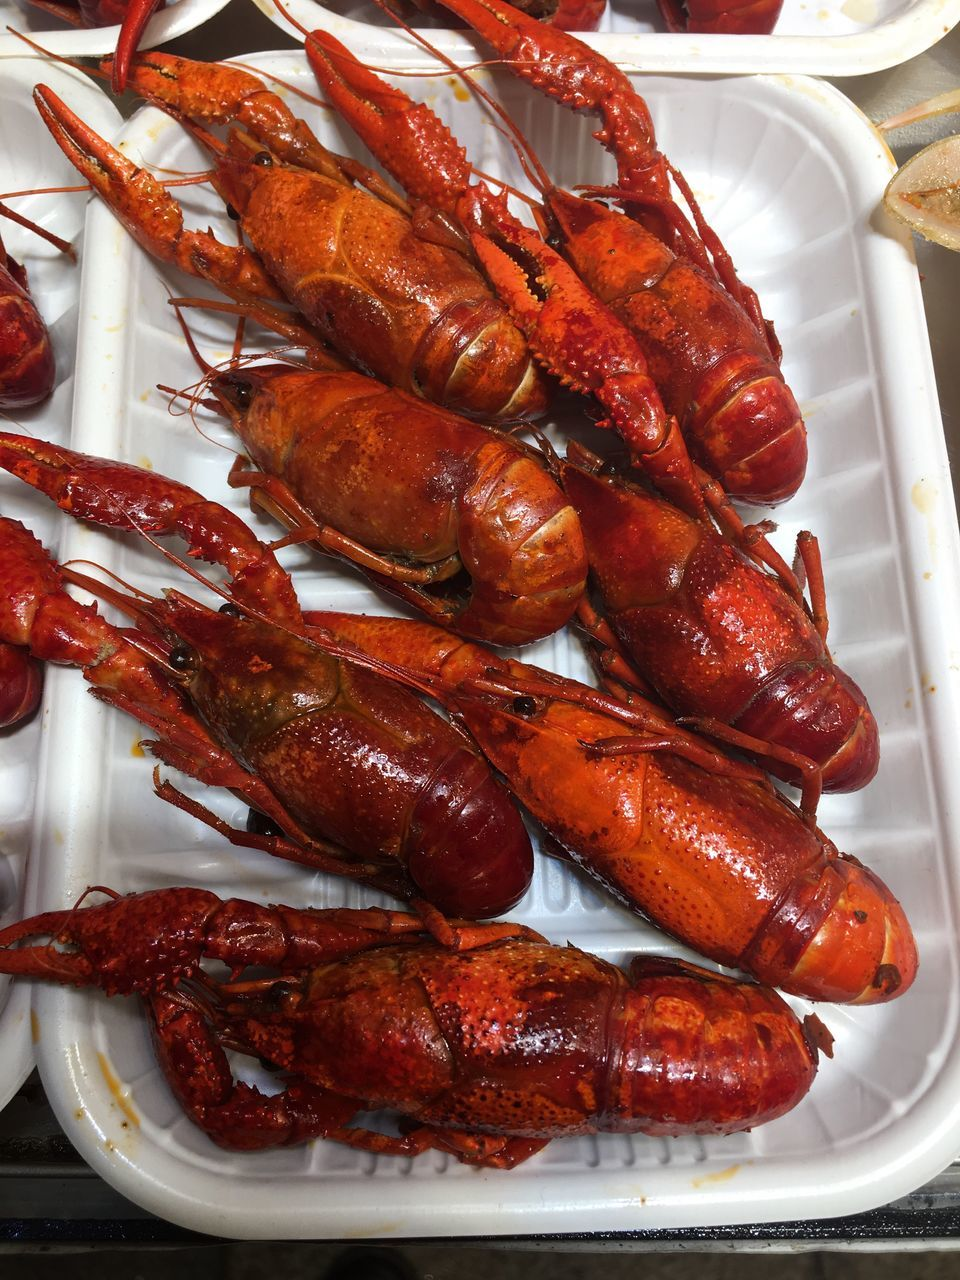 seafood, food and drink, food, freshness, lobster, plate, no people, indoors, healthy eating, shrimp, ready-to-eat, close-up, day